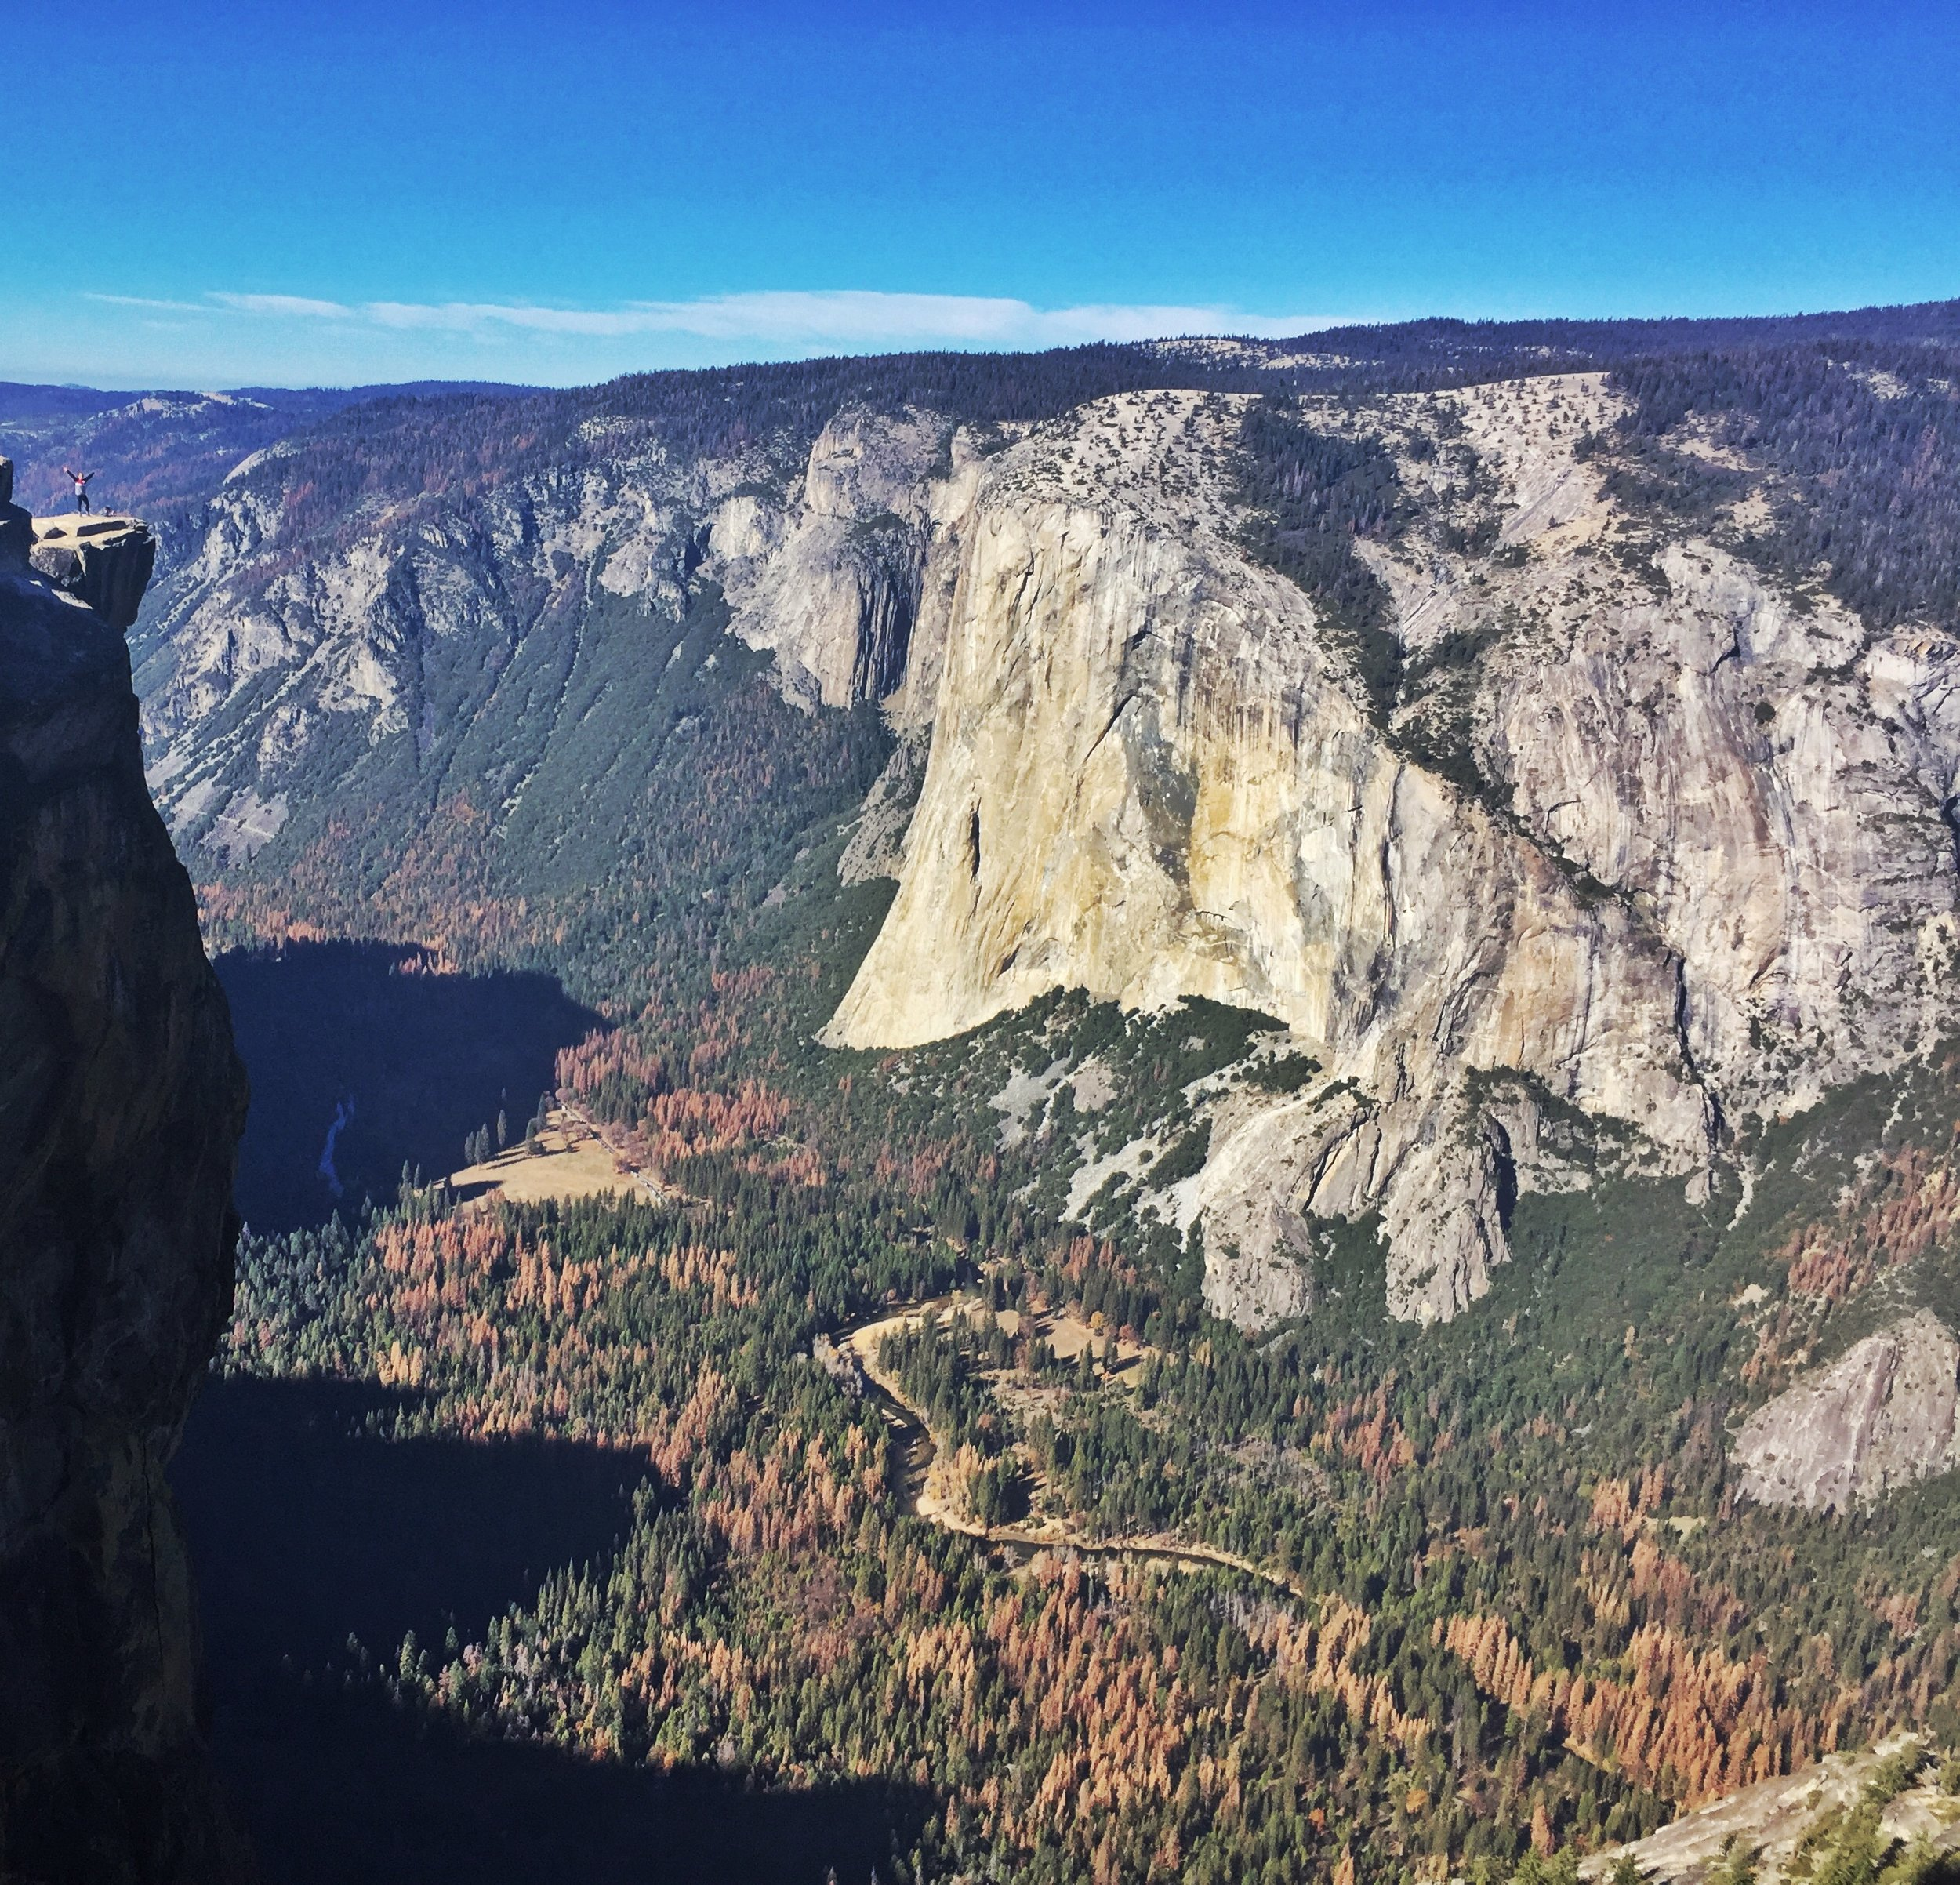 Out on the edge at Taft Point.